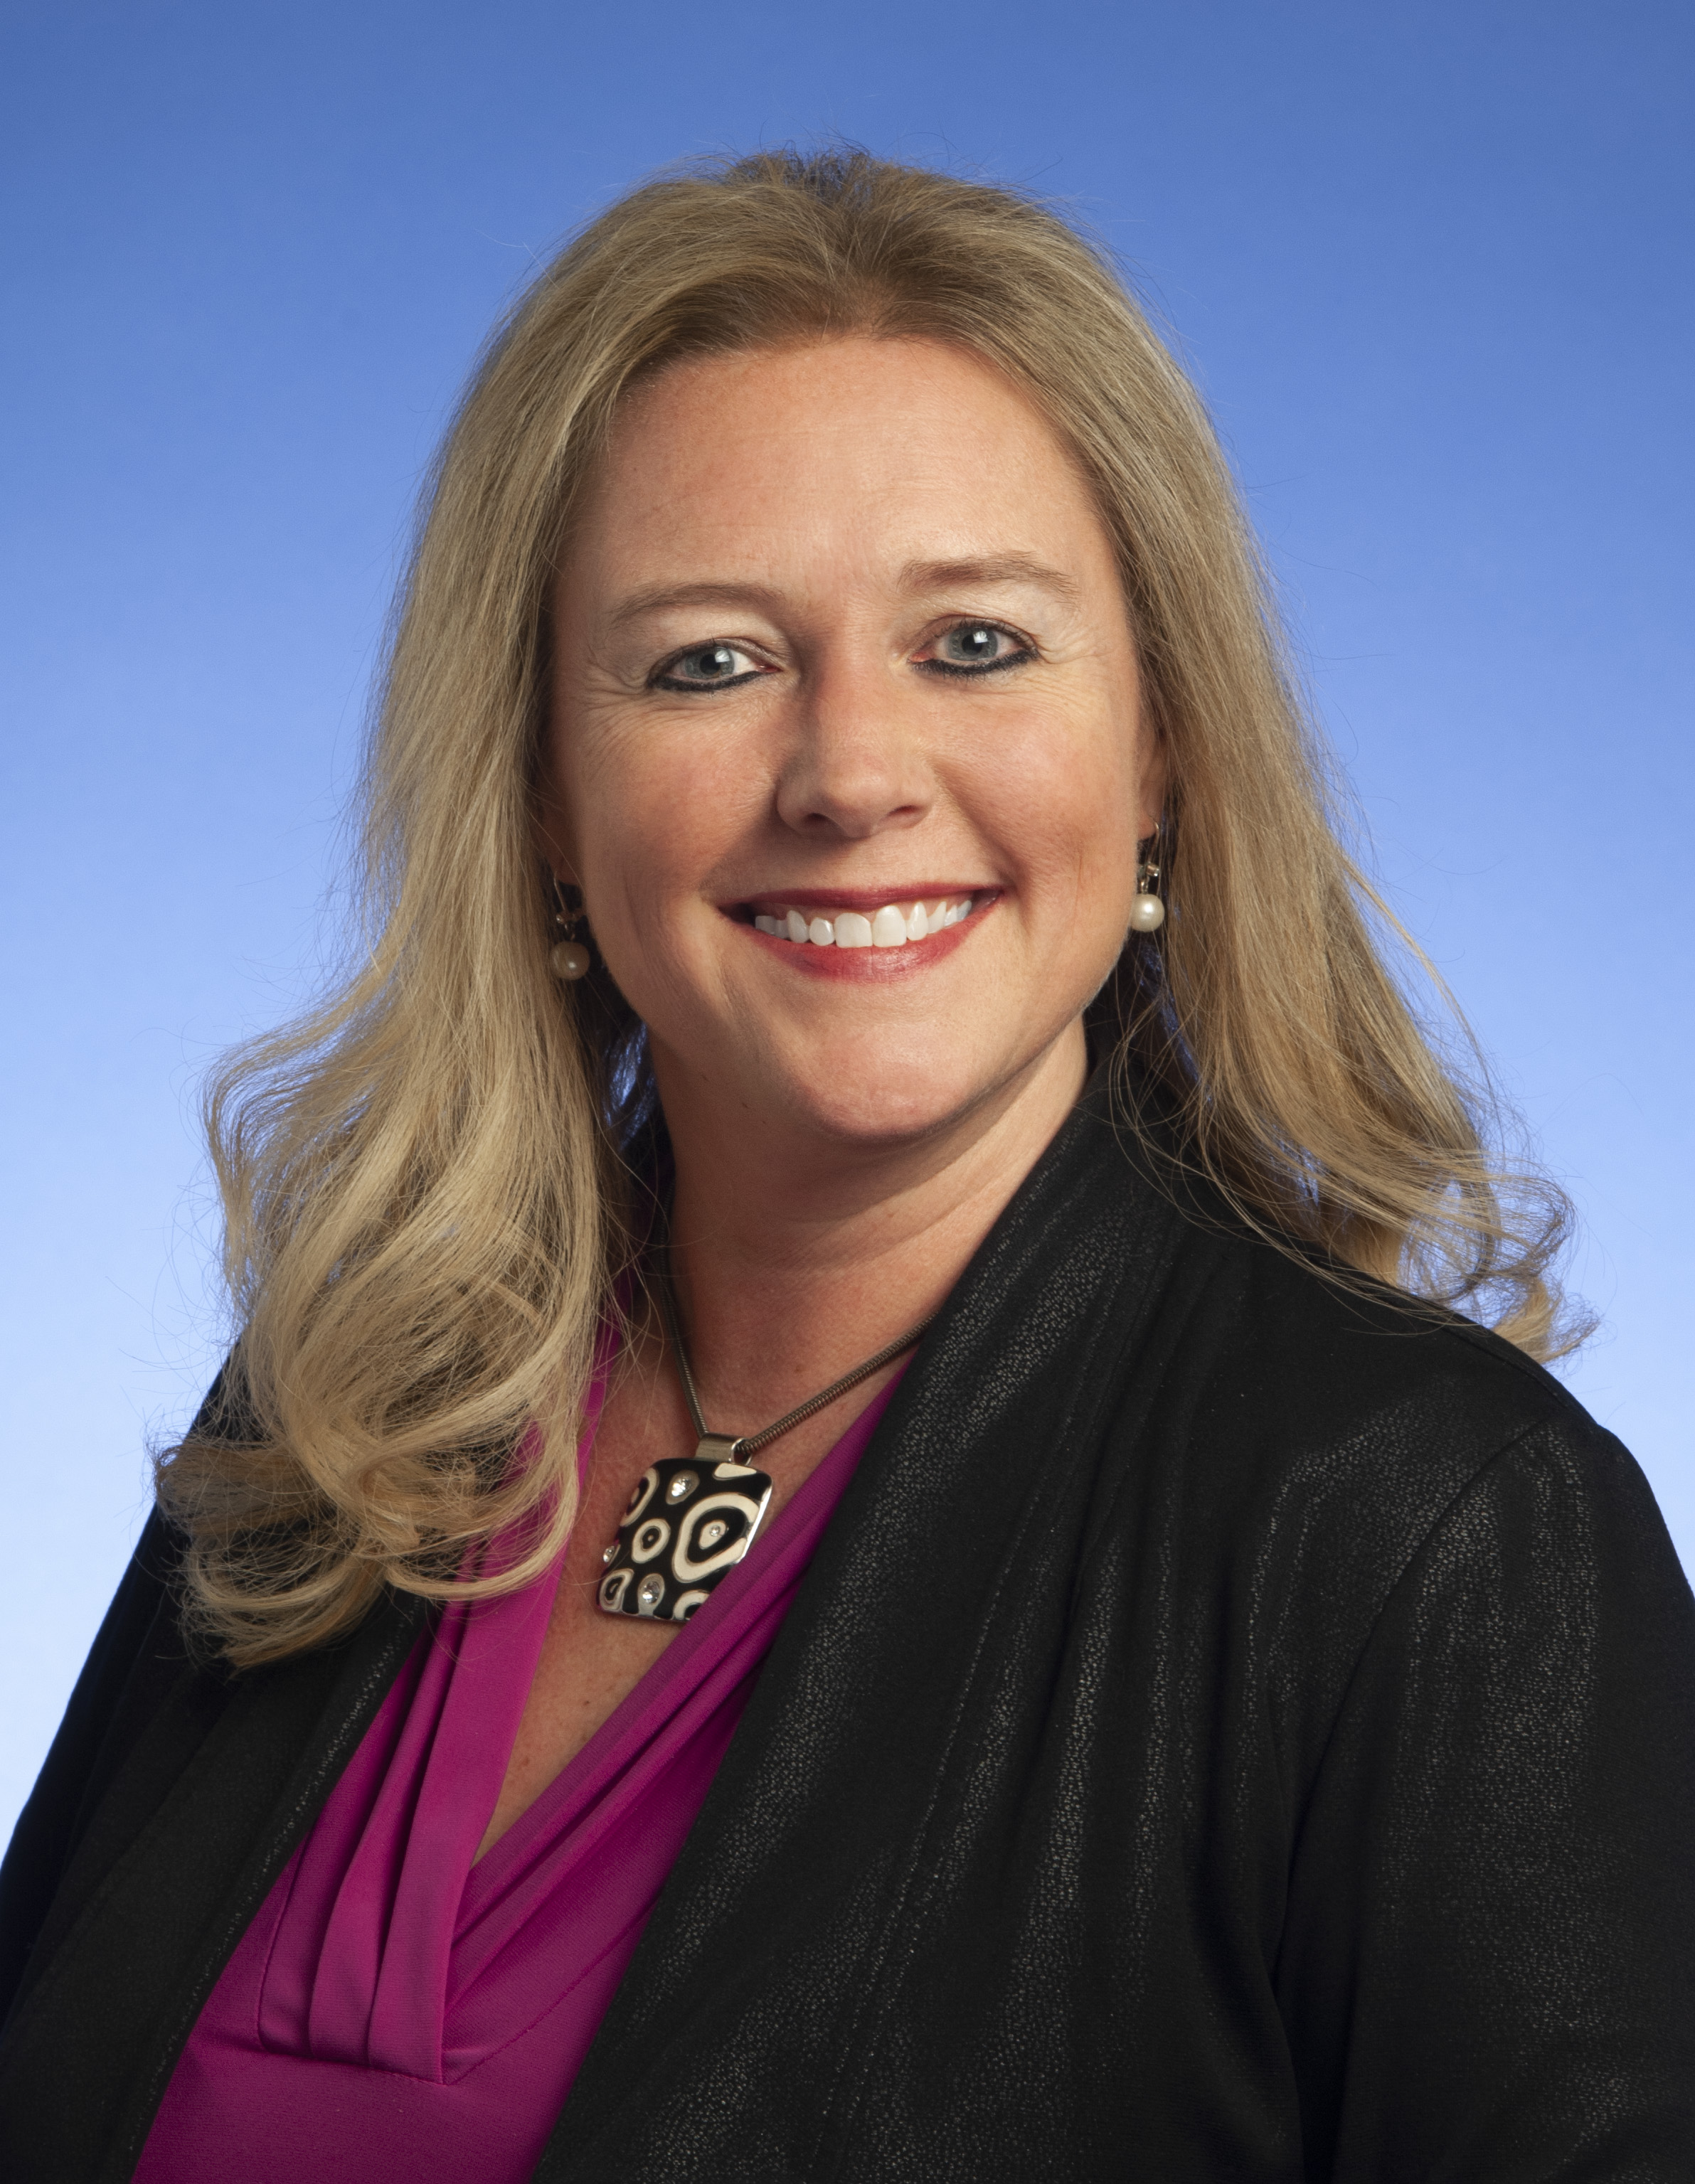 An image of Lisa Piercey, MD, MBA, FAAP